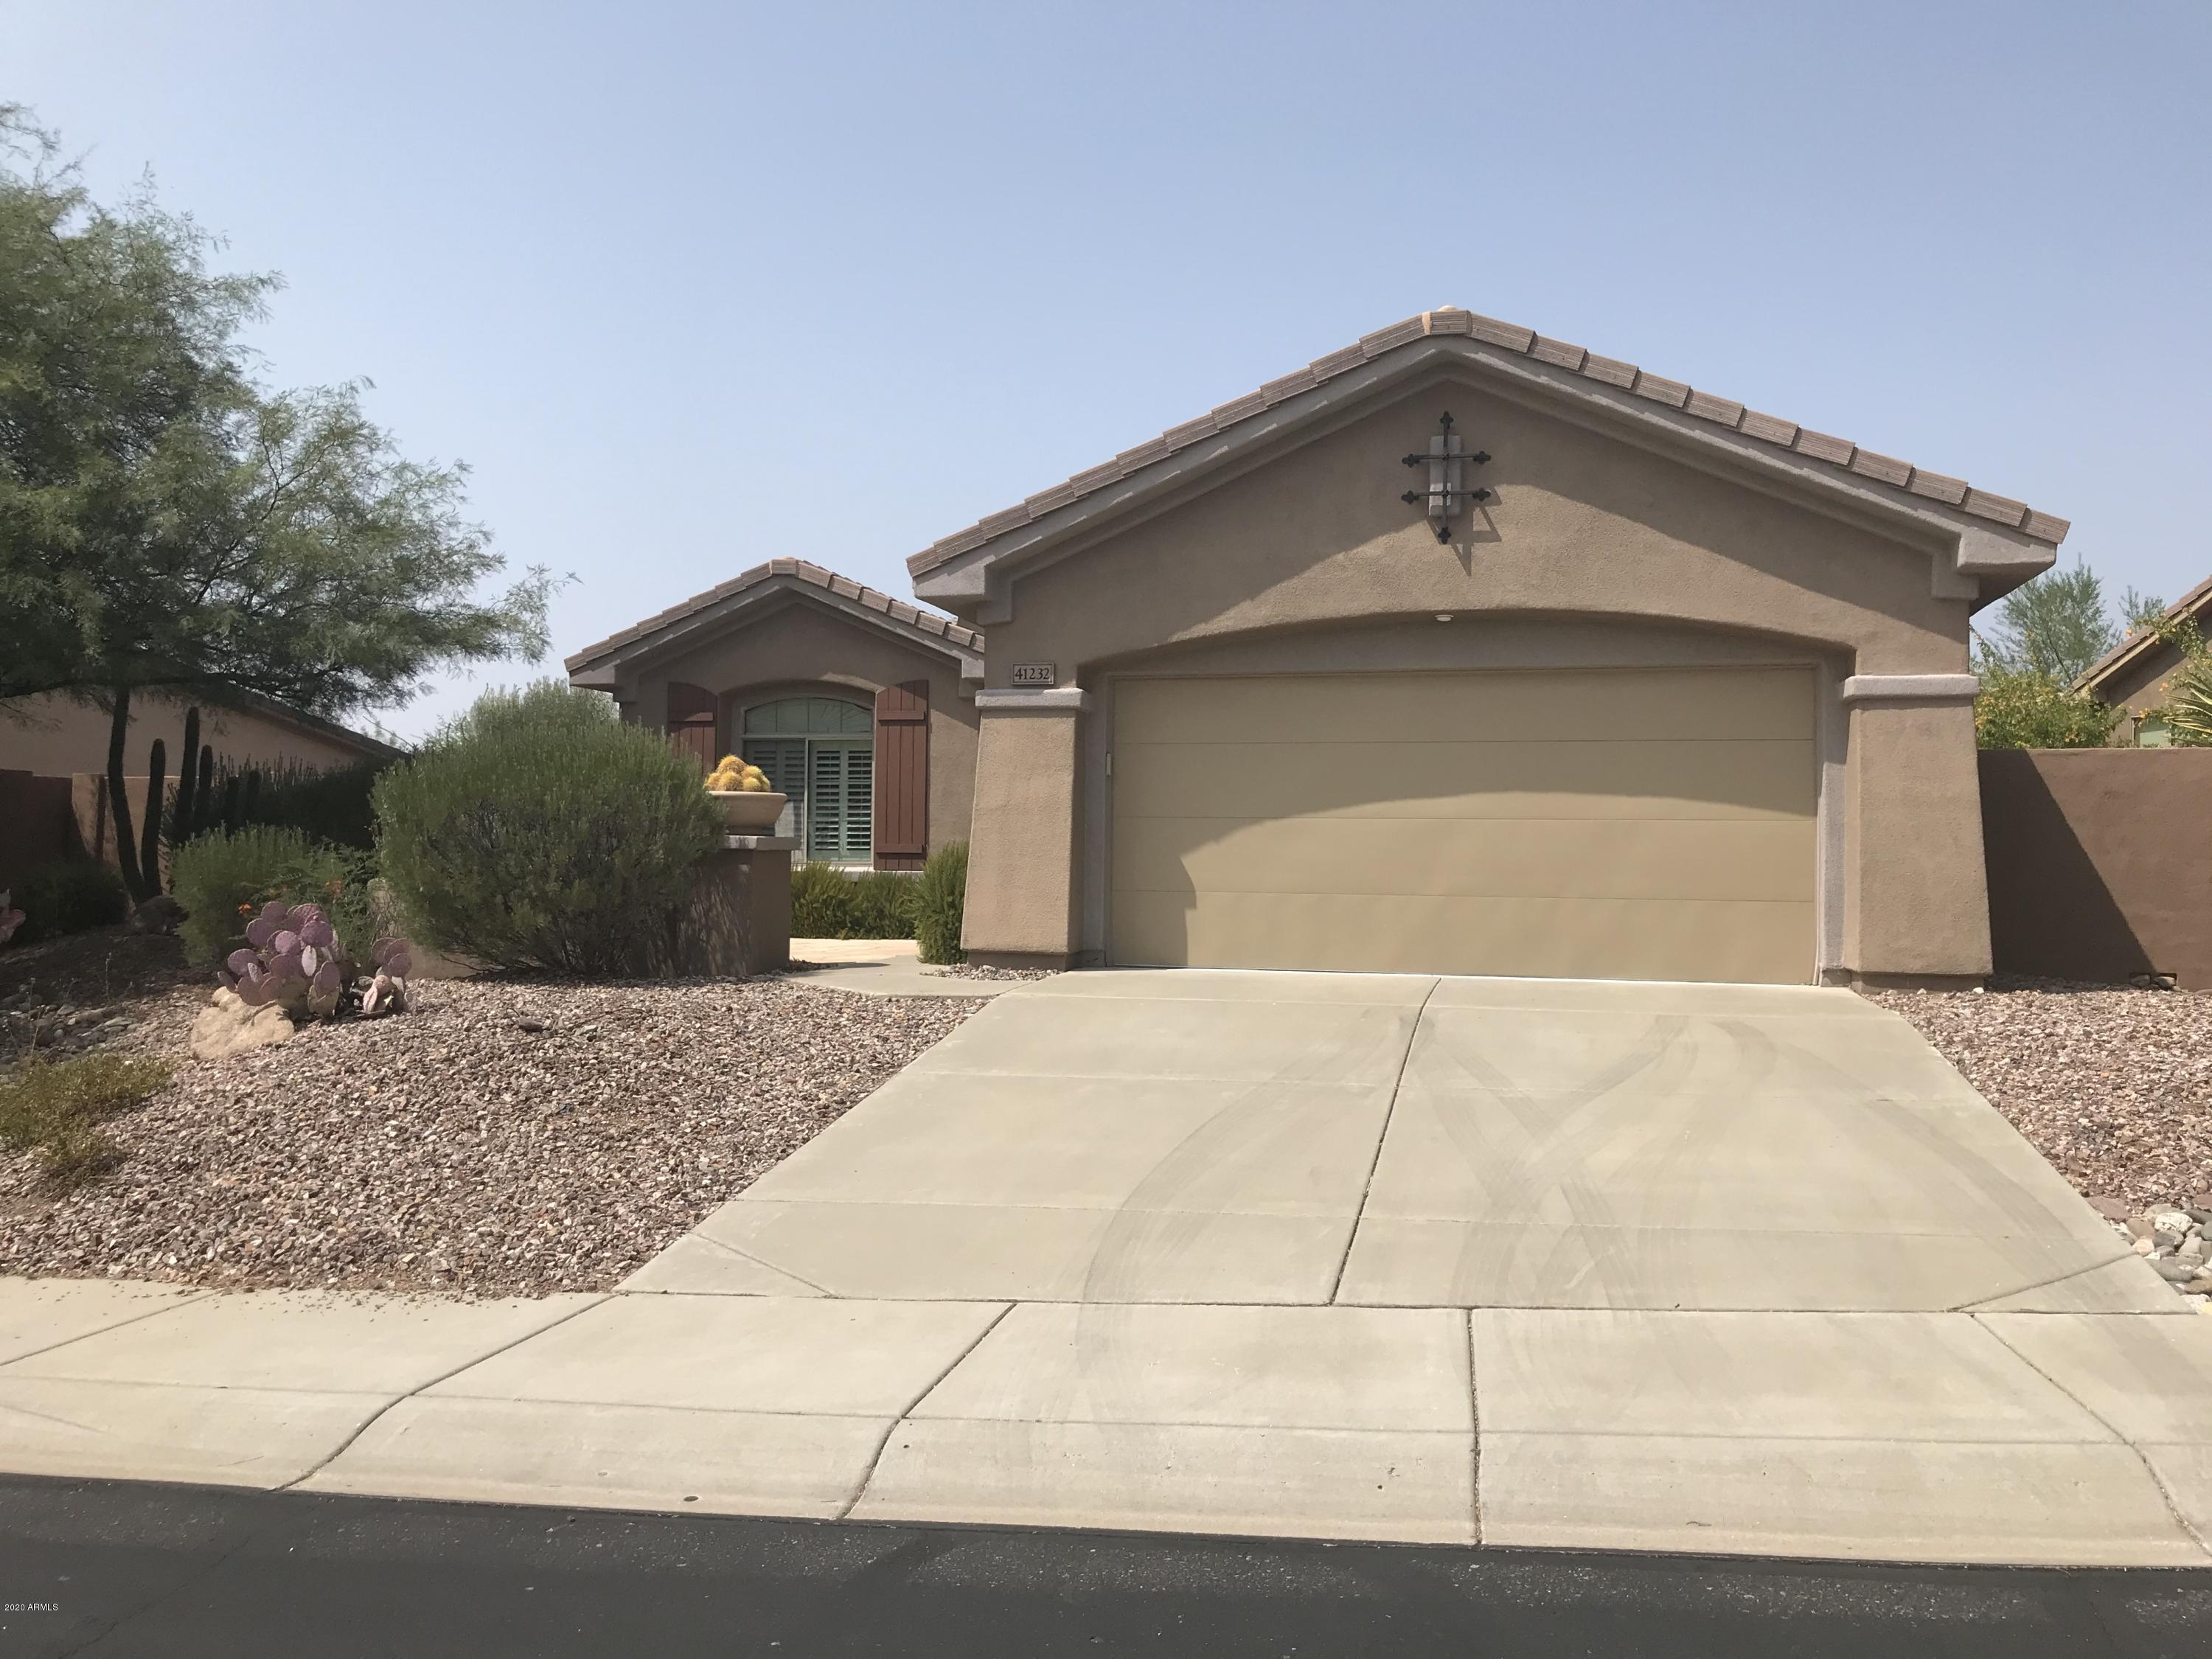 MLS 6134600 Anthem Metro Area, Anthem, AZ 85086 Anthem Homes for Rent